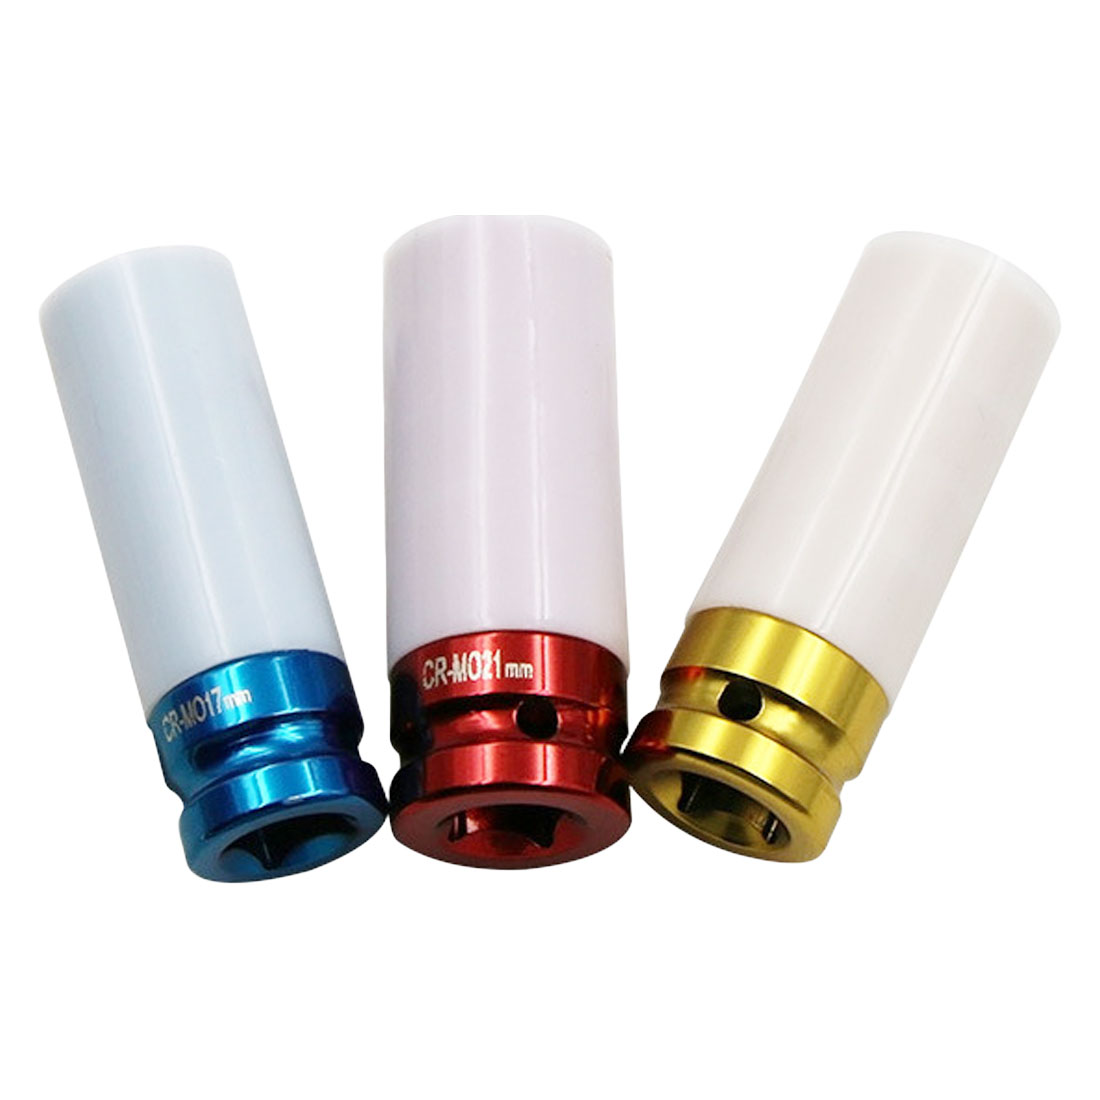 17mm/19mm/ 21mm Colorful Sleeve Tire Protection Sleeve Wall Deep Impact Nut Socket High-carbon Steel Wheel